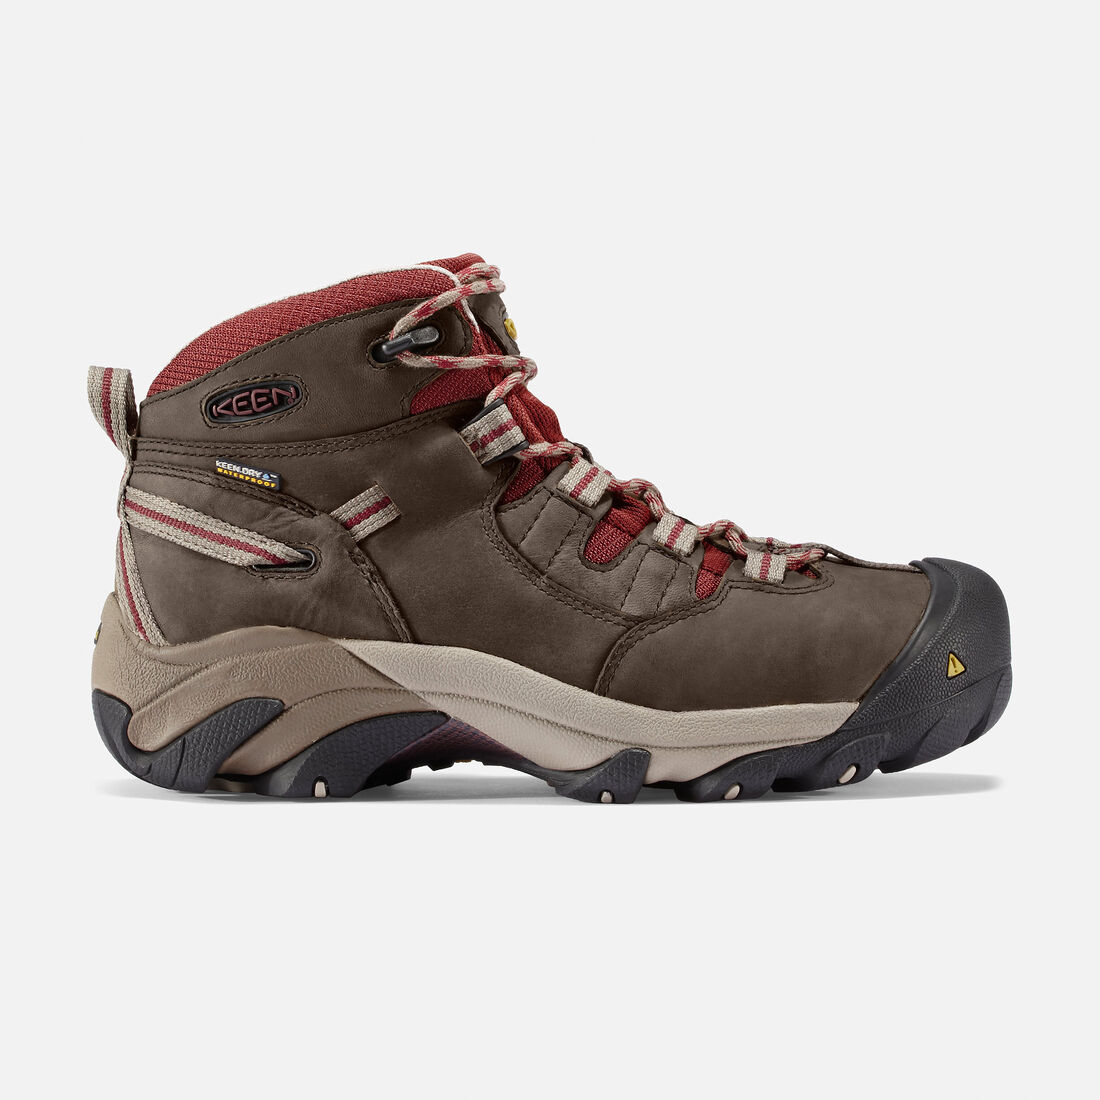 Women's Detroit Mid (Steel Toe) in Black Olive/Madder Brown - large view.